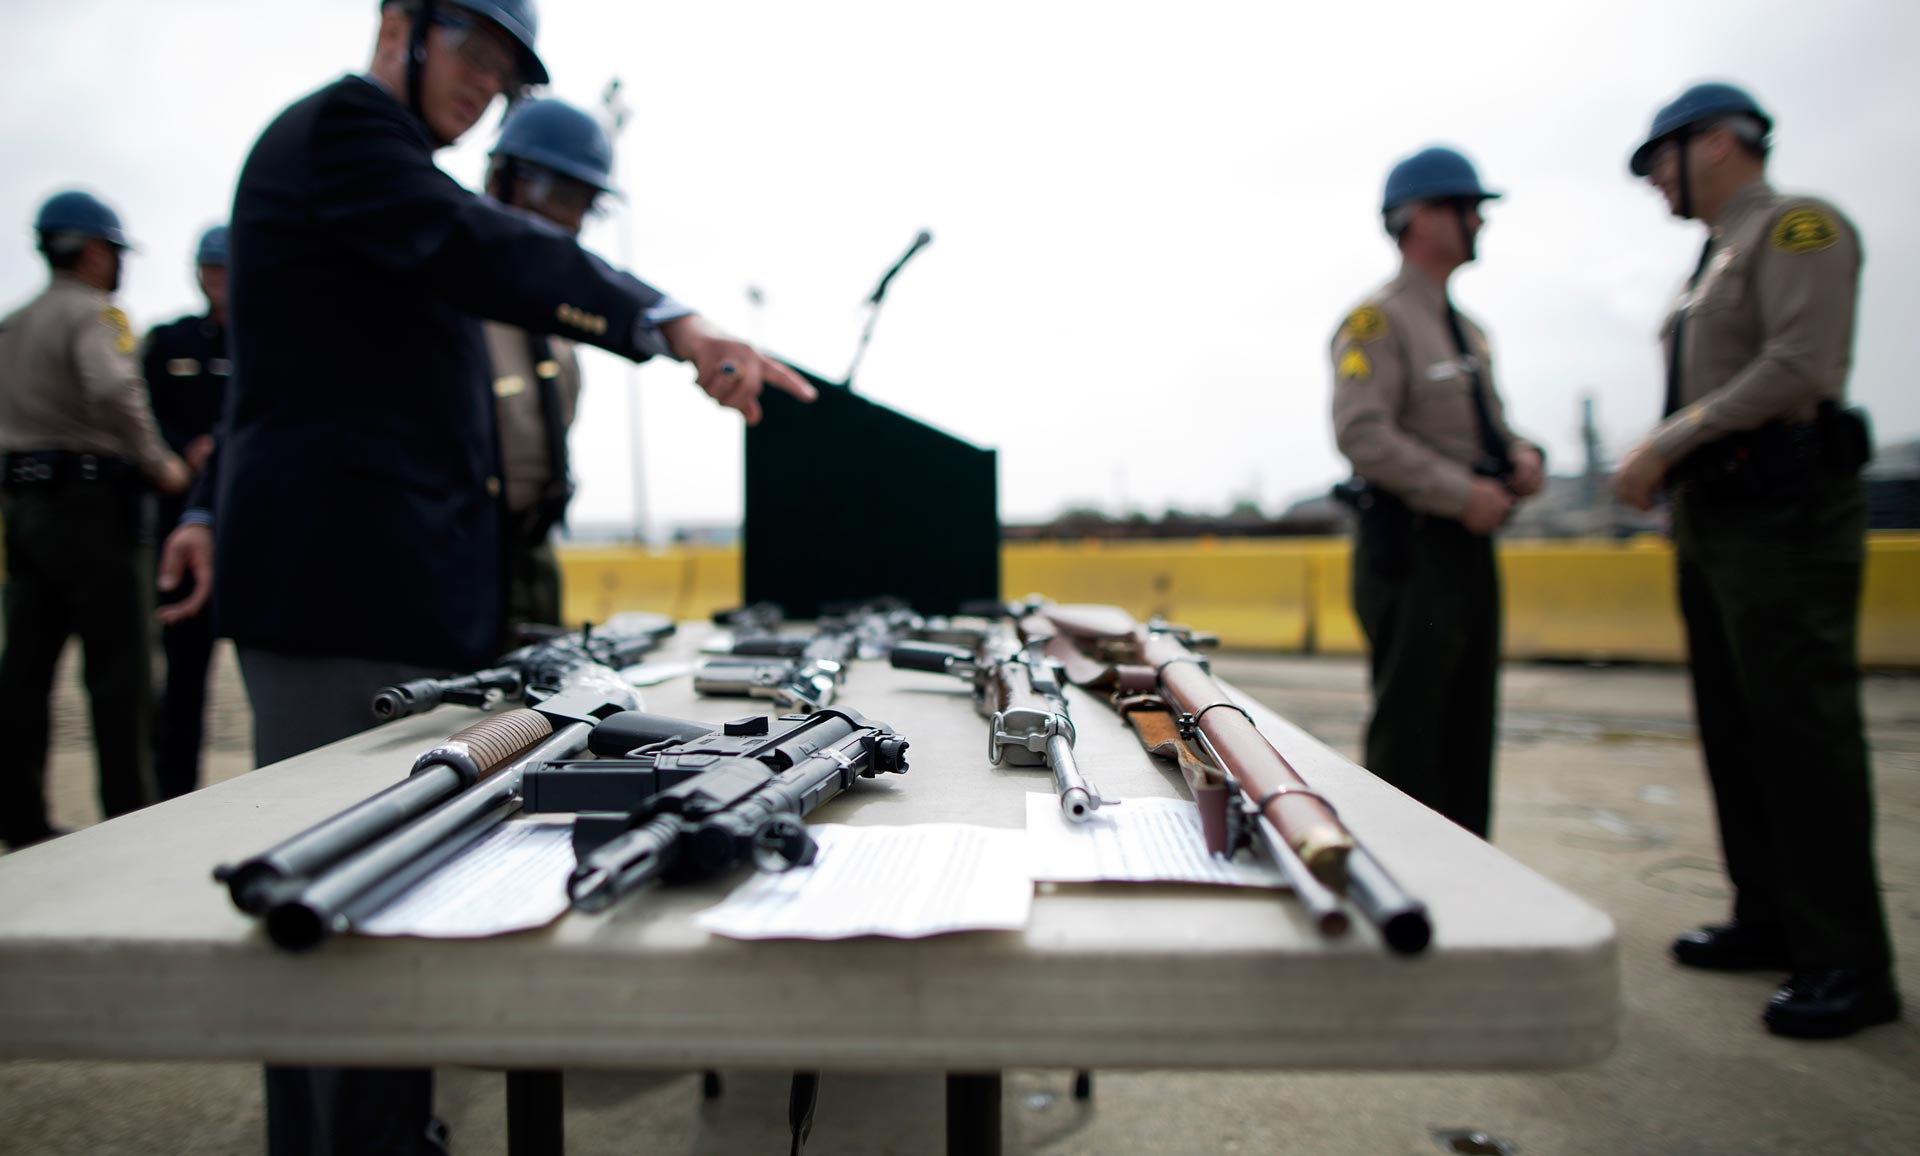 Officials look at guns confiscated in various law enforcement operations at a Los Angeles County Sheriffs' annual gun melt.